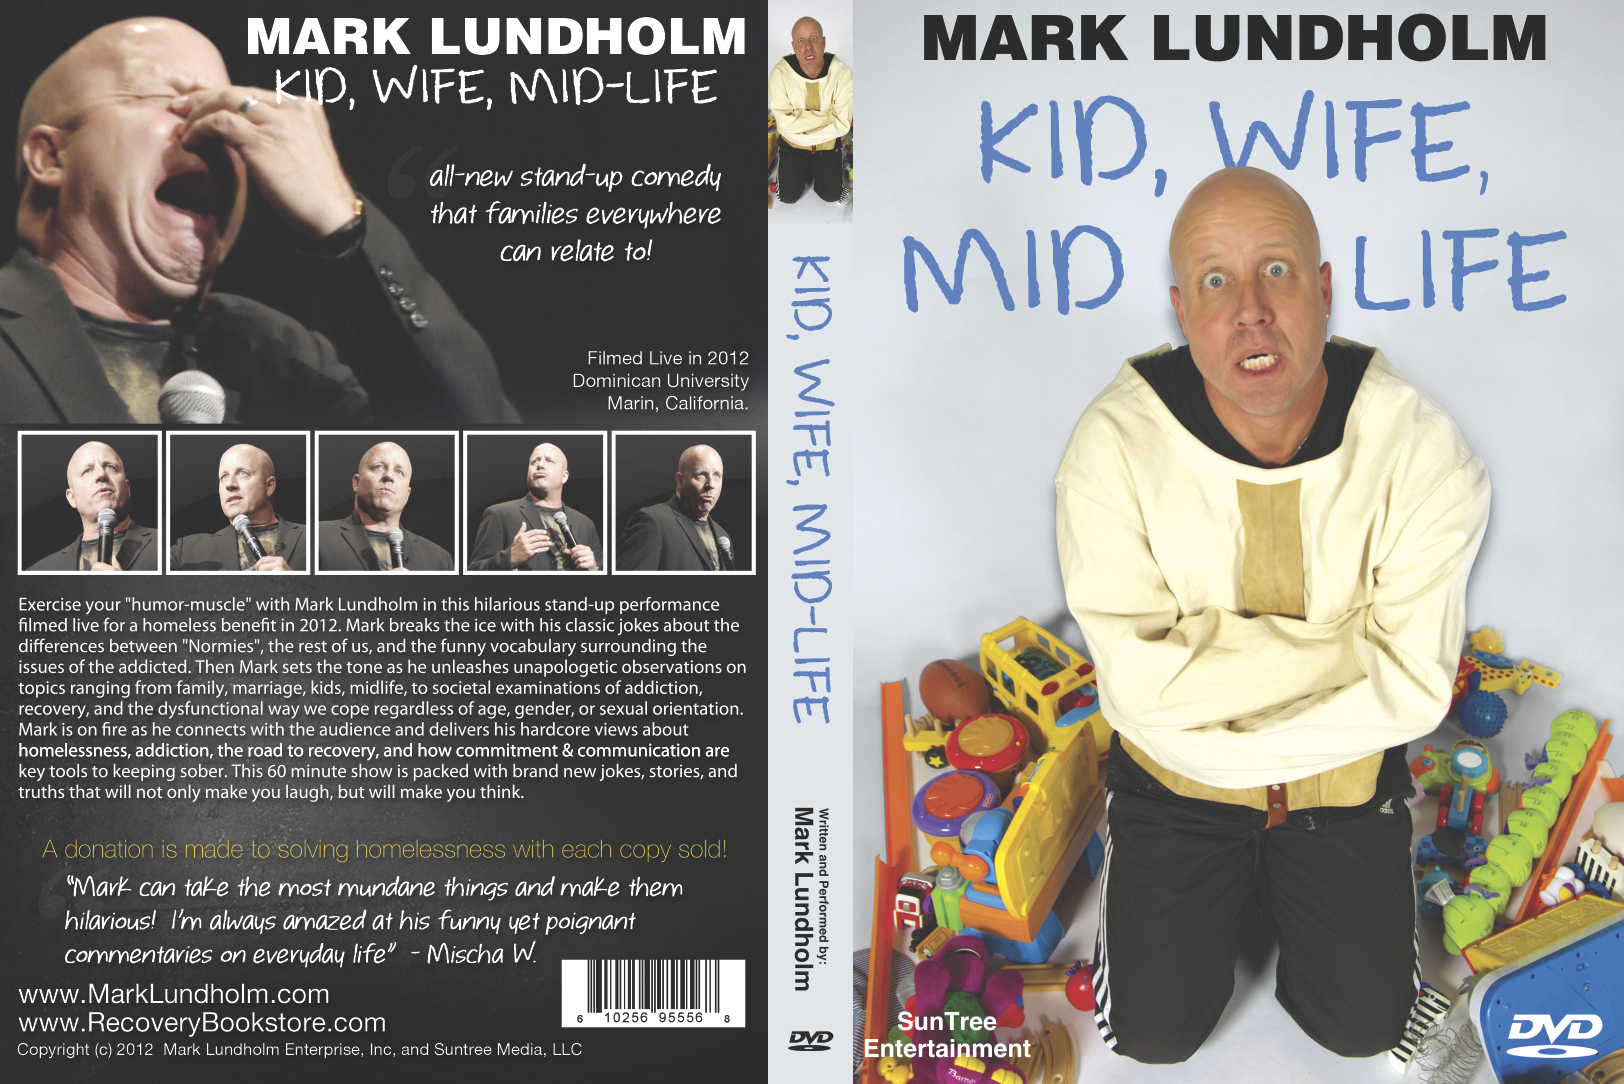 kids-wife-mid-life-dvd-mark-lundholm-full-dvd-cover.jpg